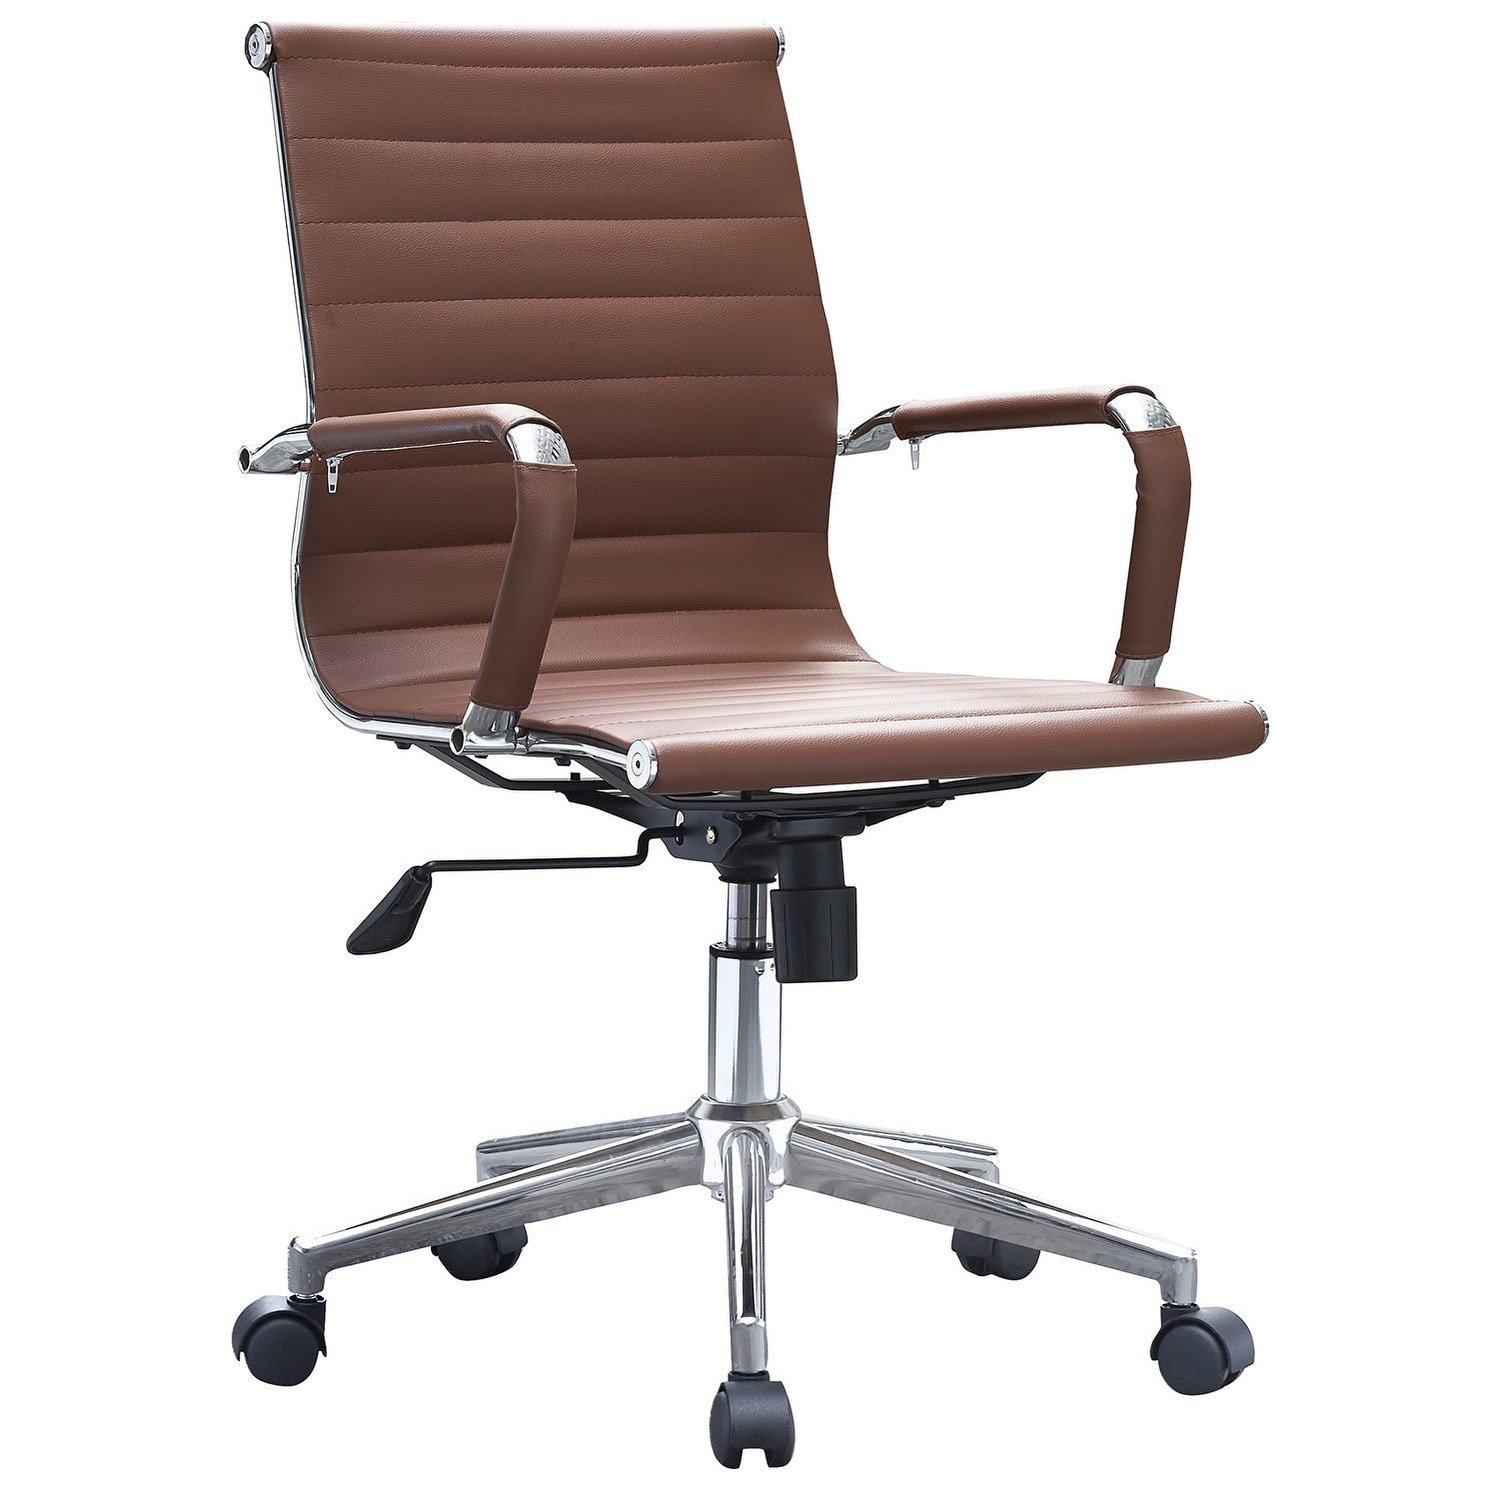 Work Chair 2xhome Brown Mid Back Pu Leather Executive Office Chair Ribbed Tilt Conference Room Boss Home Work Desk Task Guest With Arms